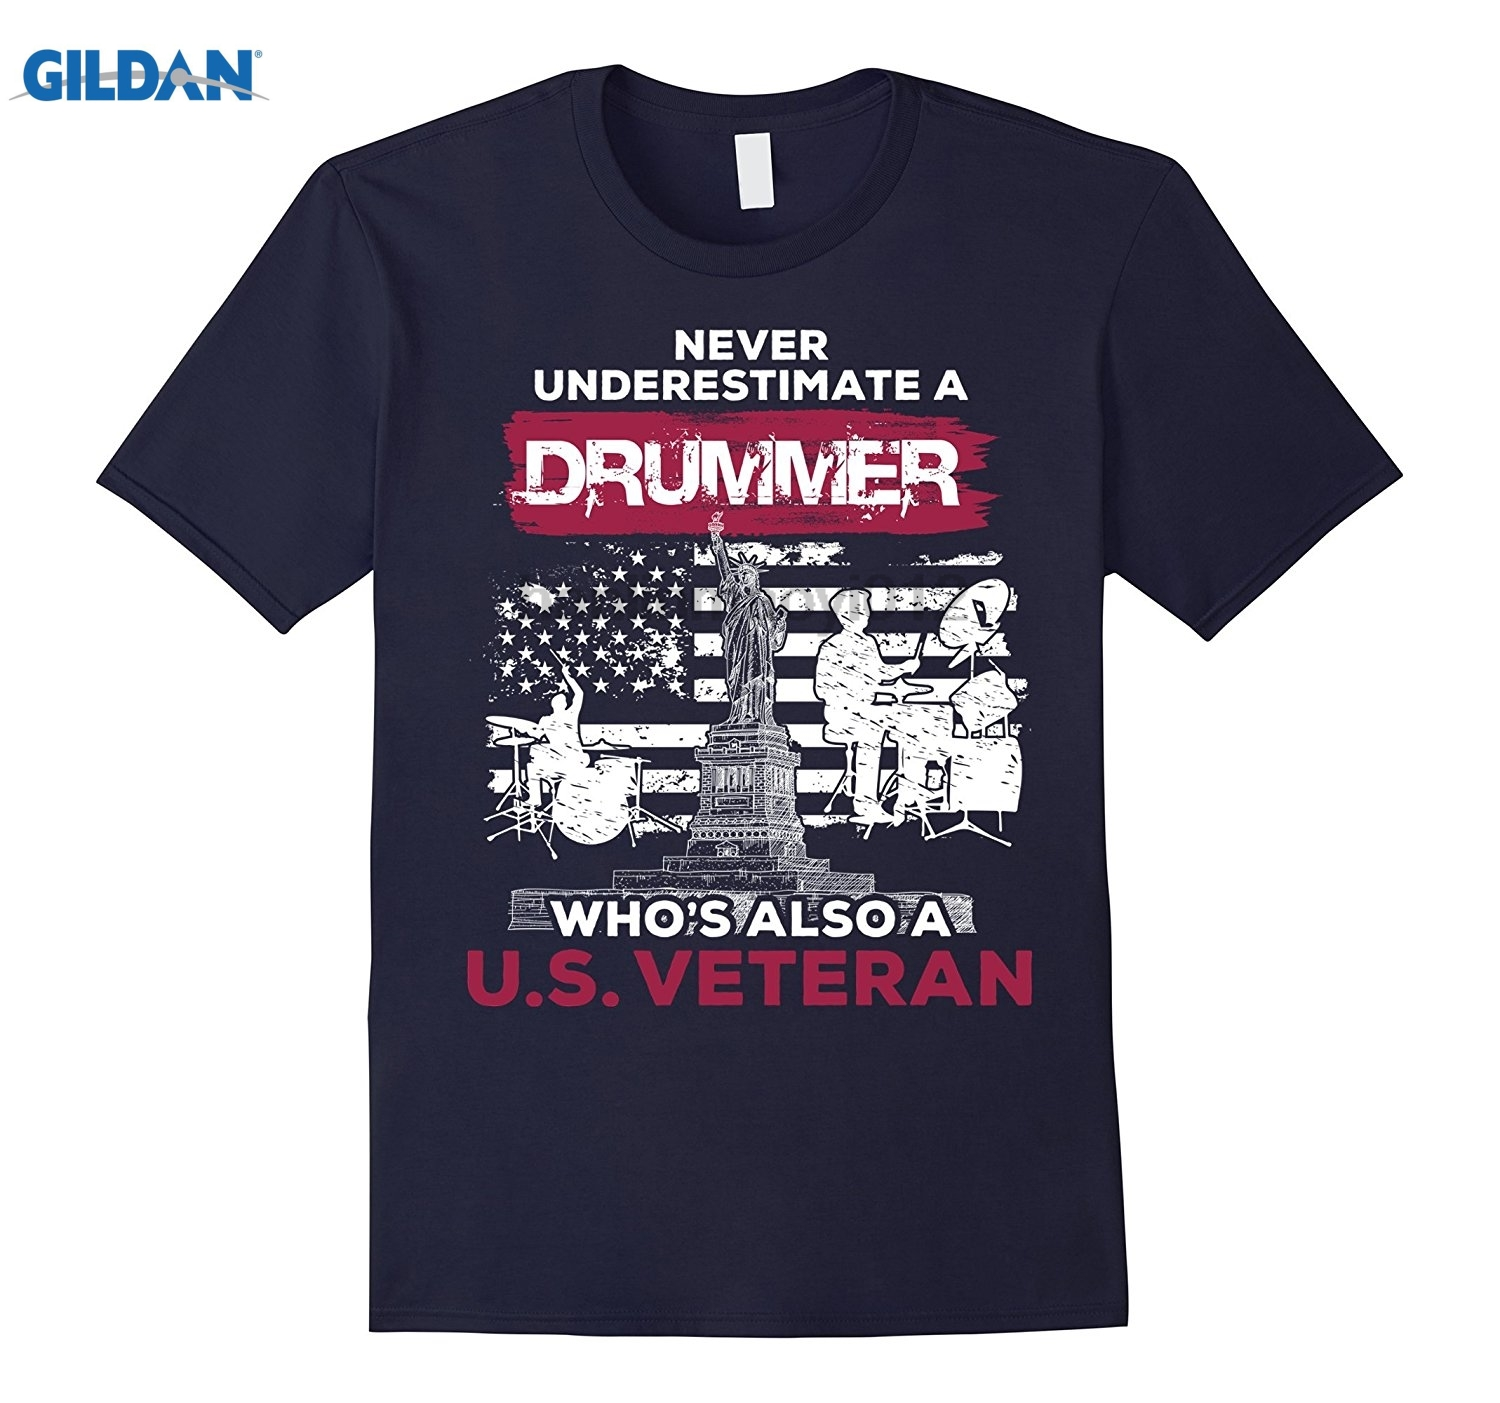 GILDAN Never Underestimate A Drummer Whos Also A U.S.Veteran Shirt Mothers Day Ms. T-shirt